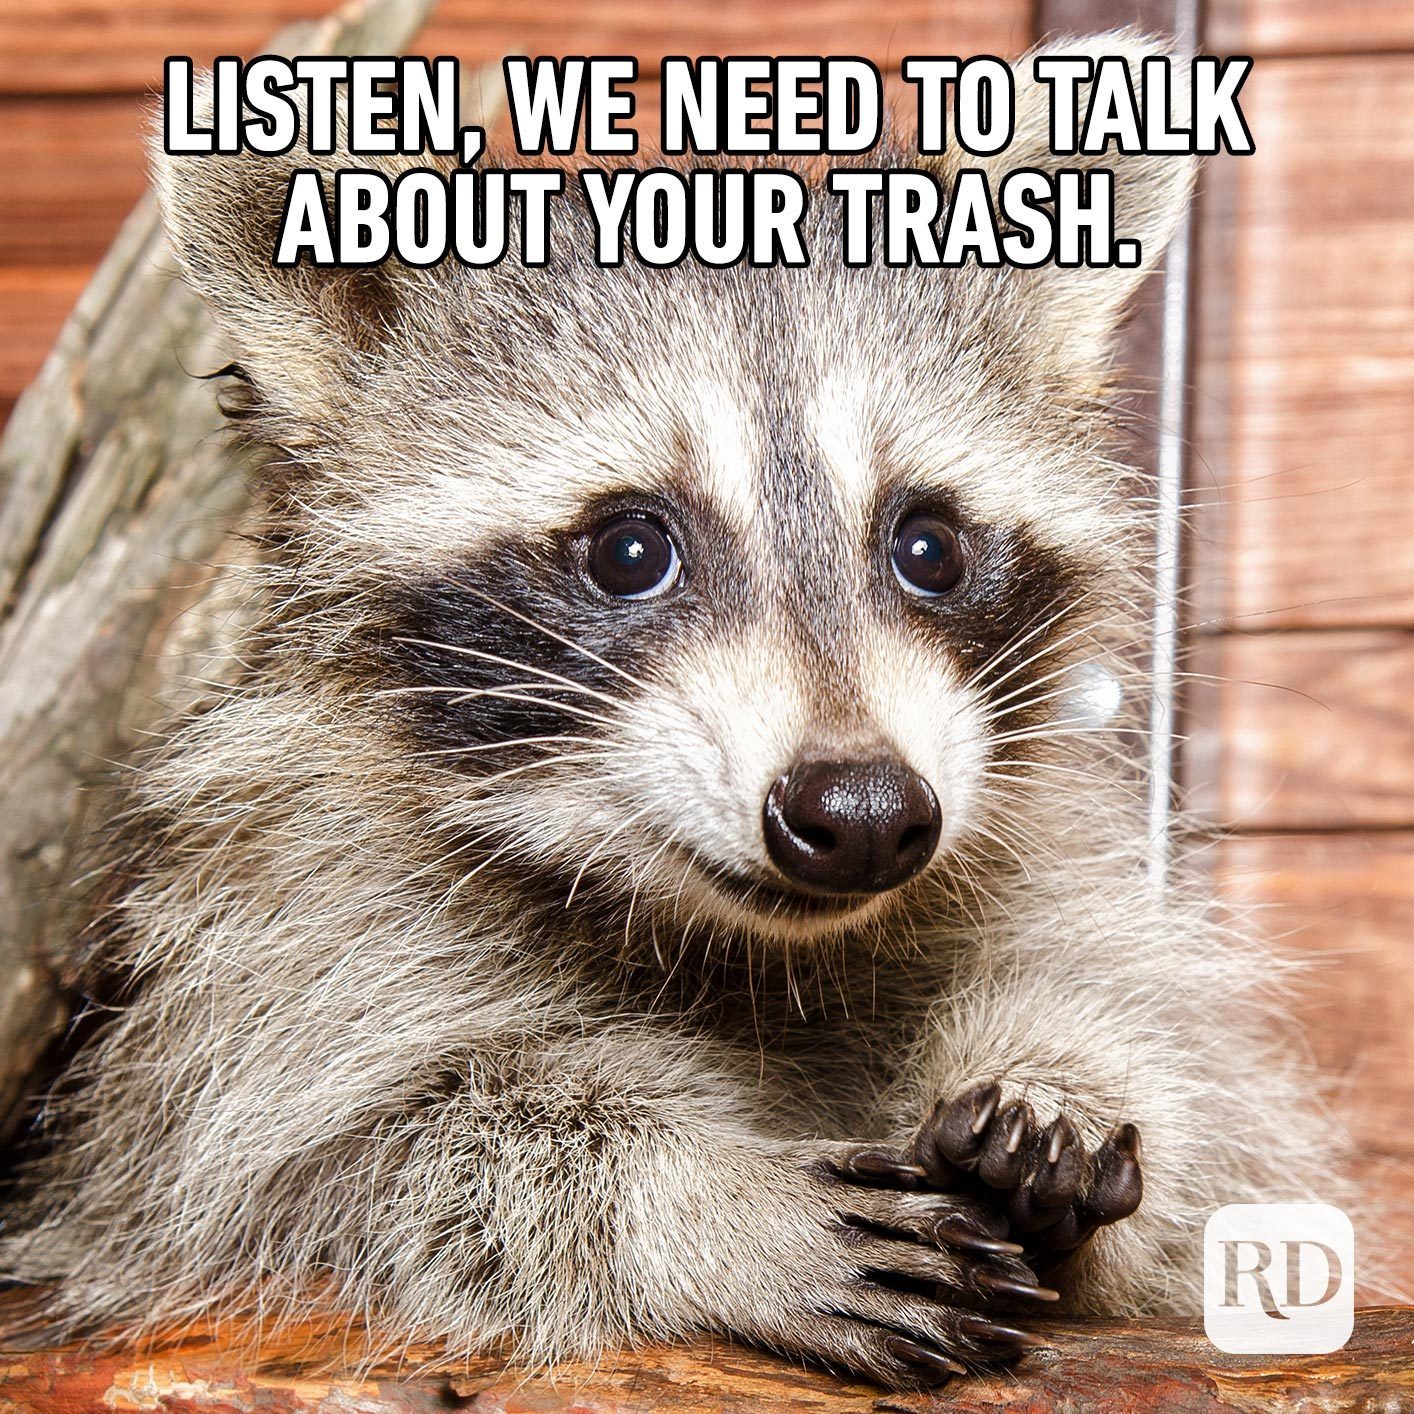 Racoon. Meme text: Listen, we need to talk about your trash.